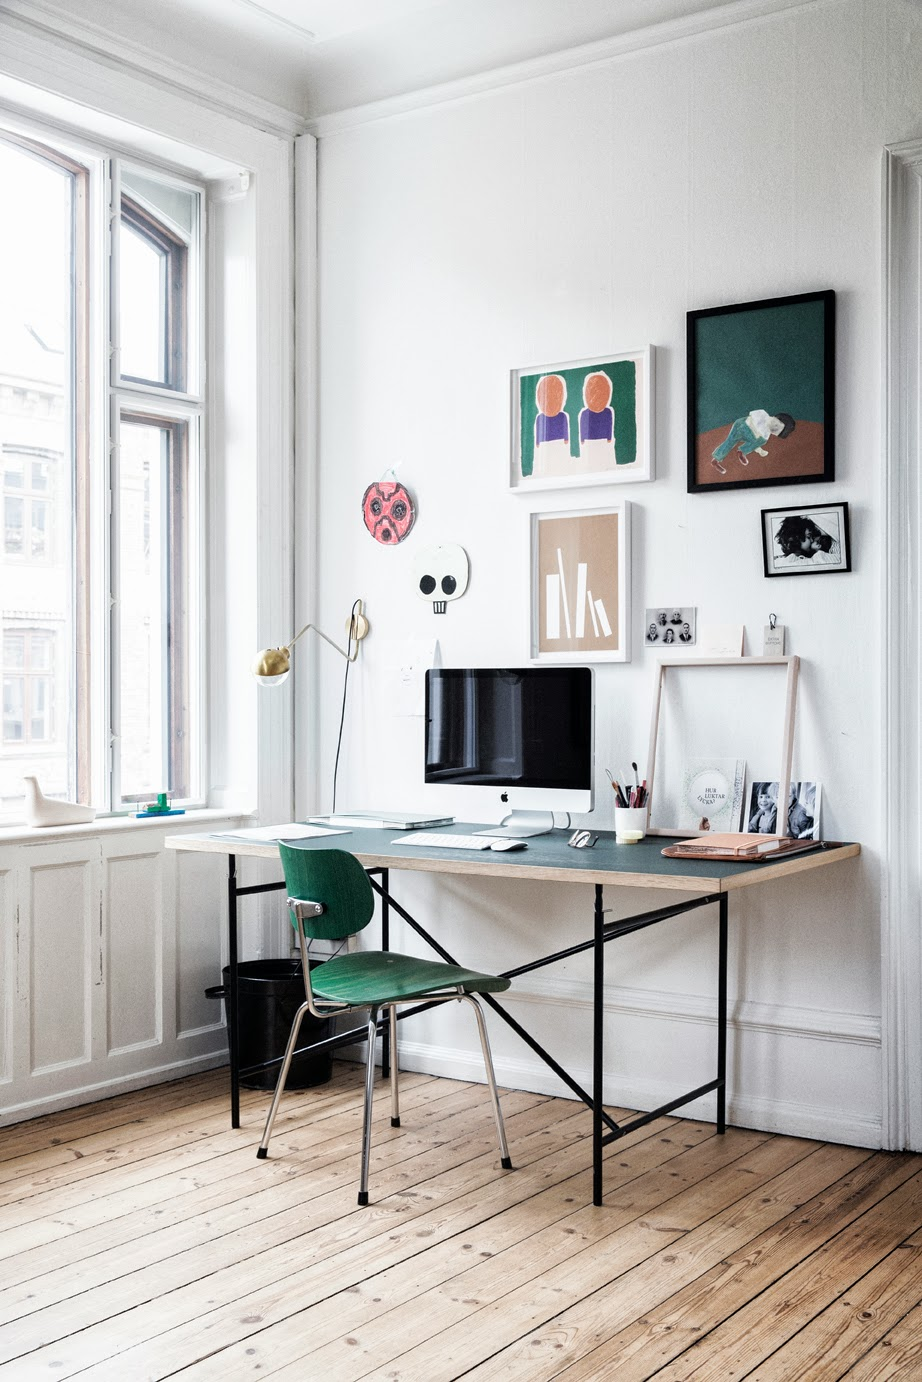 The home of graphic designer Tanja Vibe for Elle Decoration 1